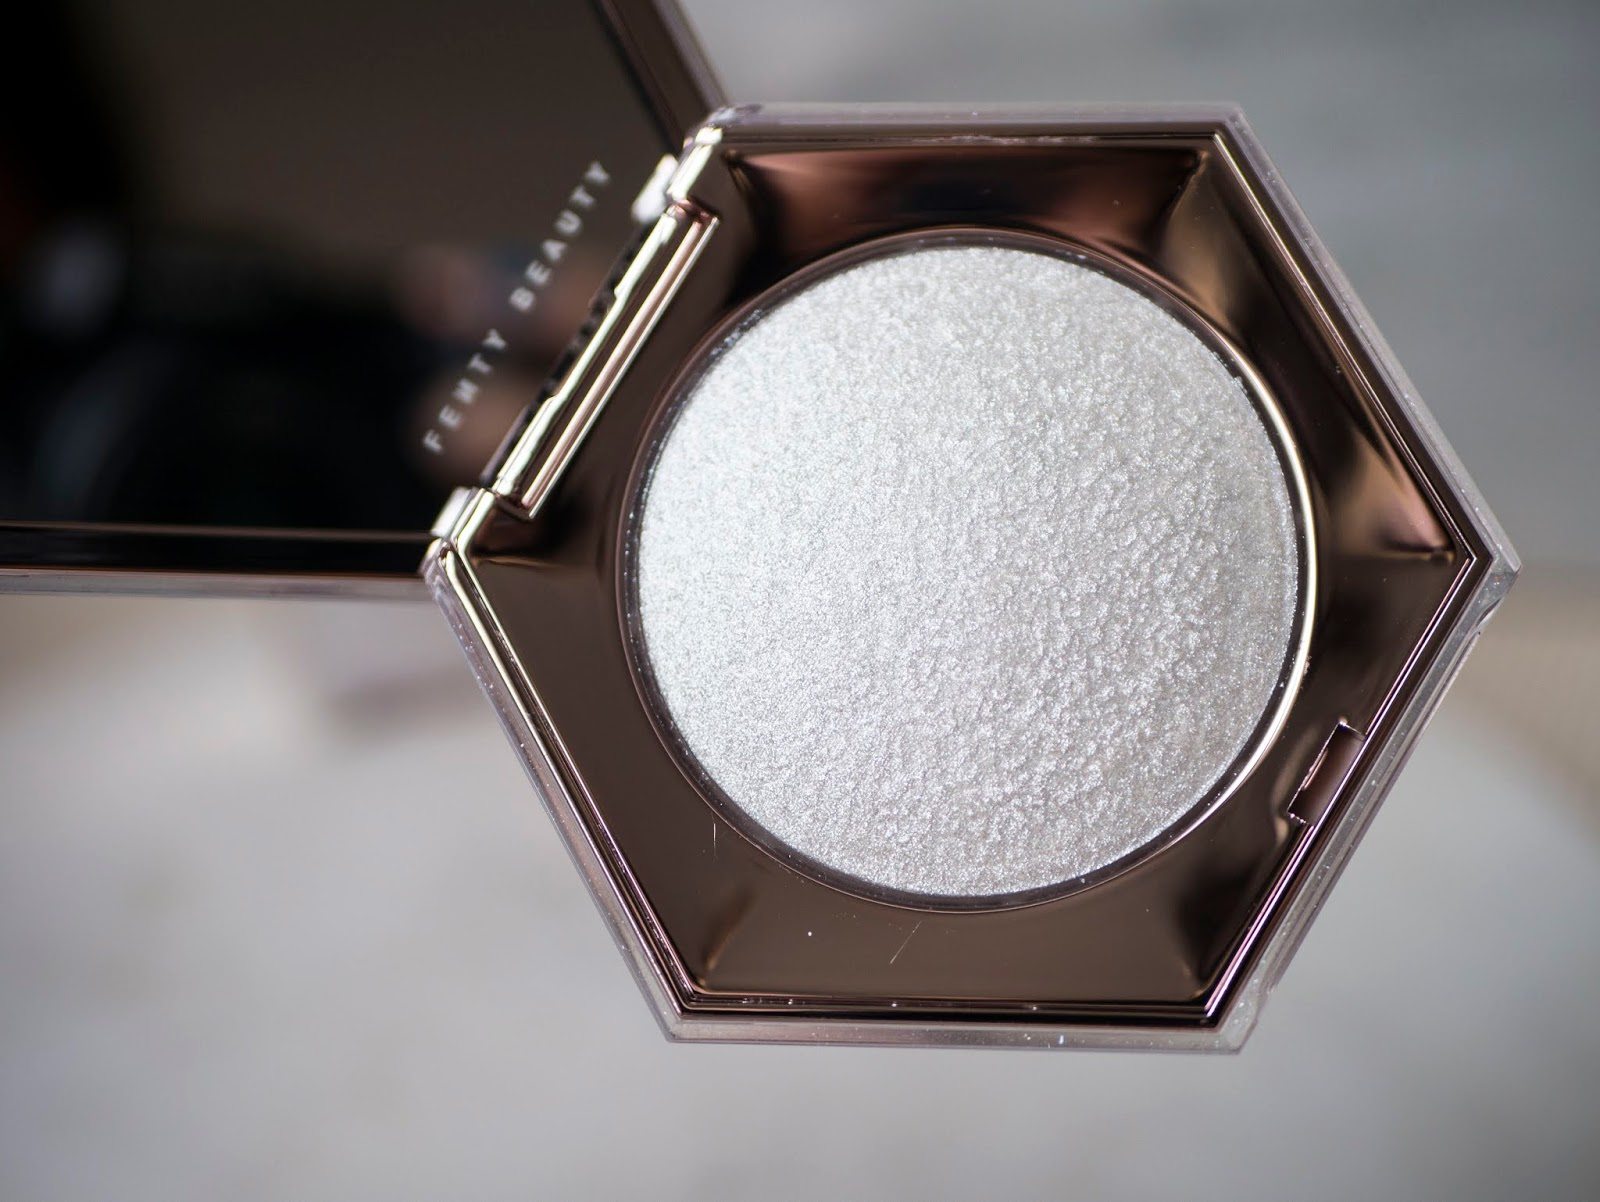 Fenty Beauty - Diamond Bomb